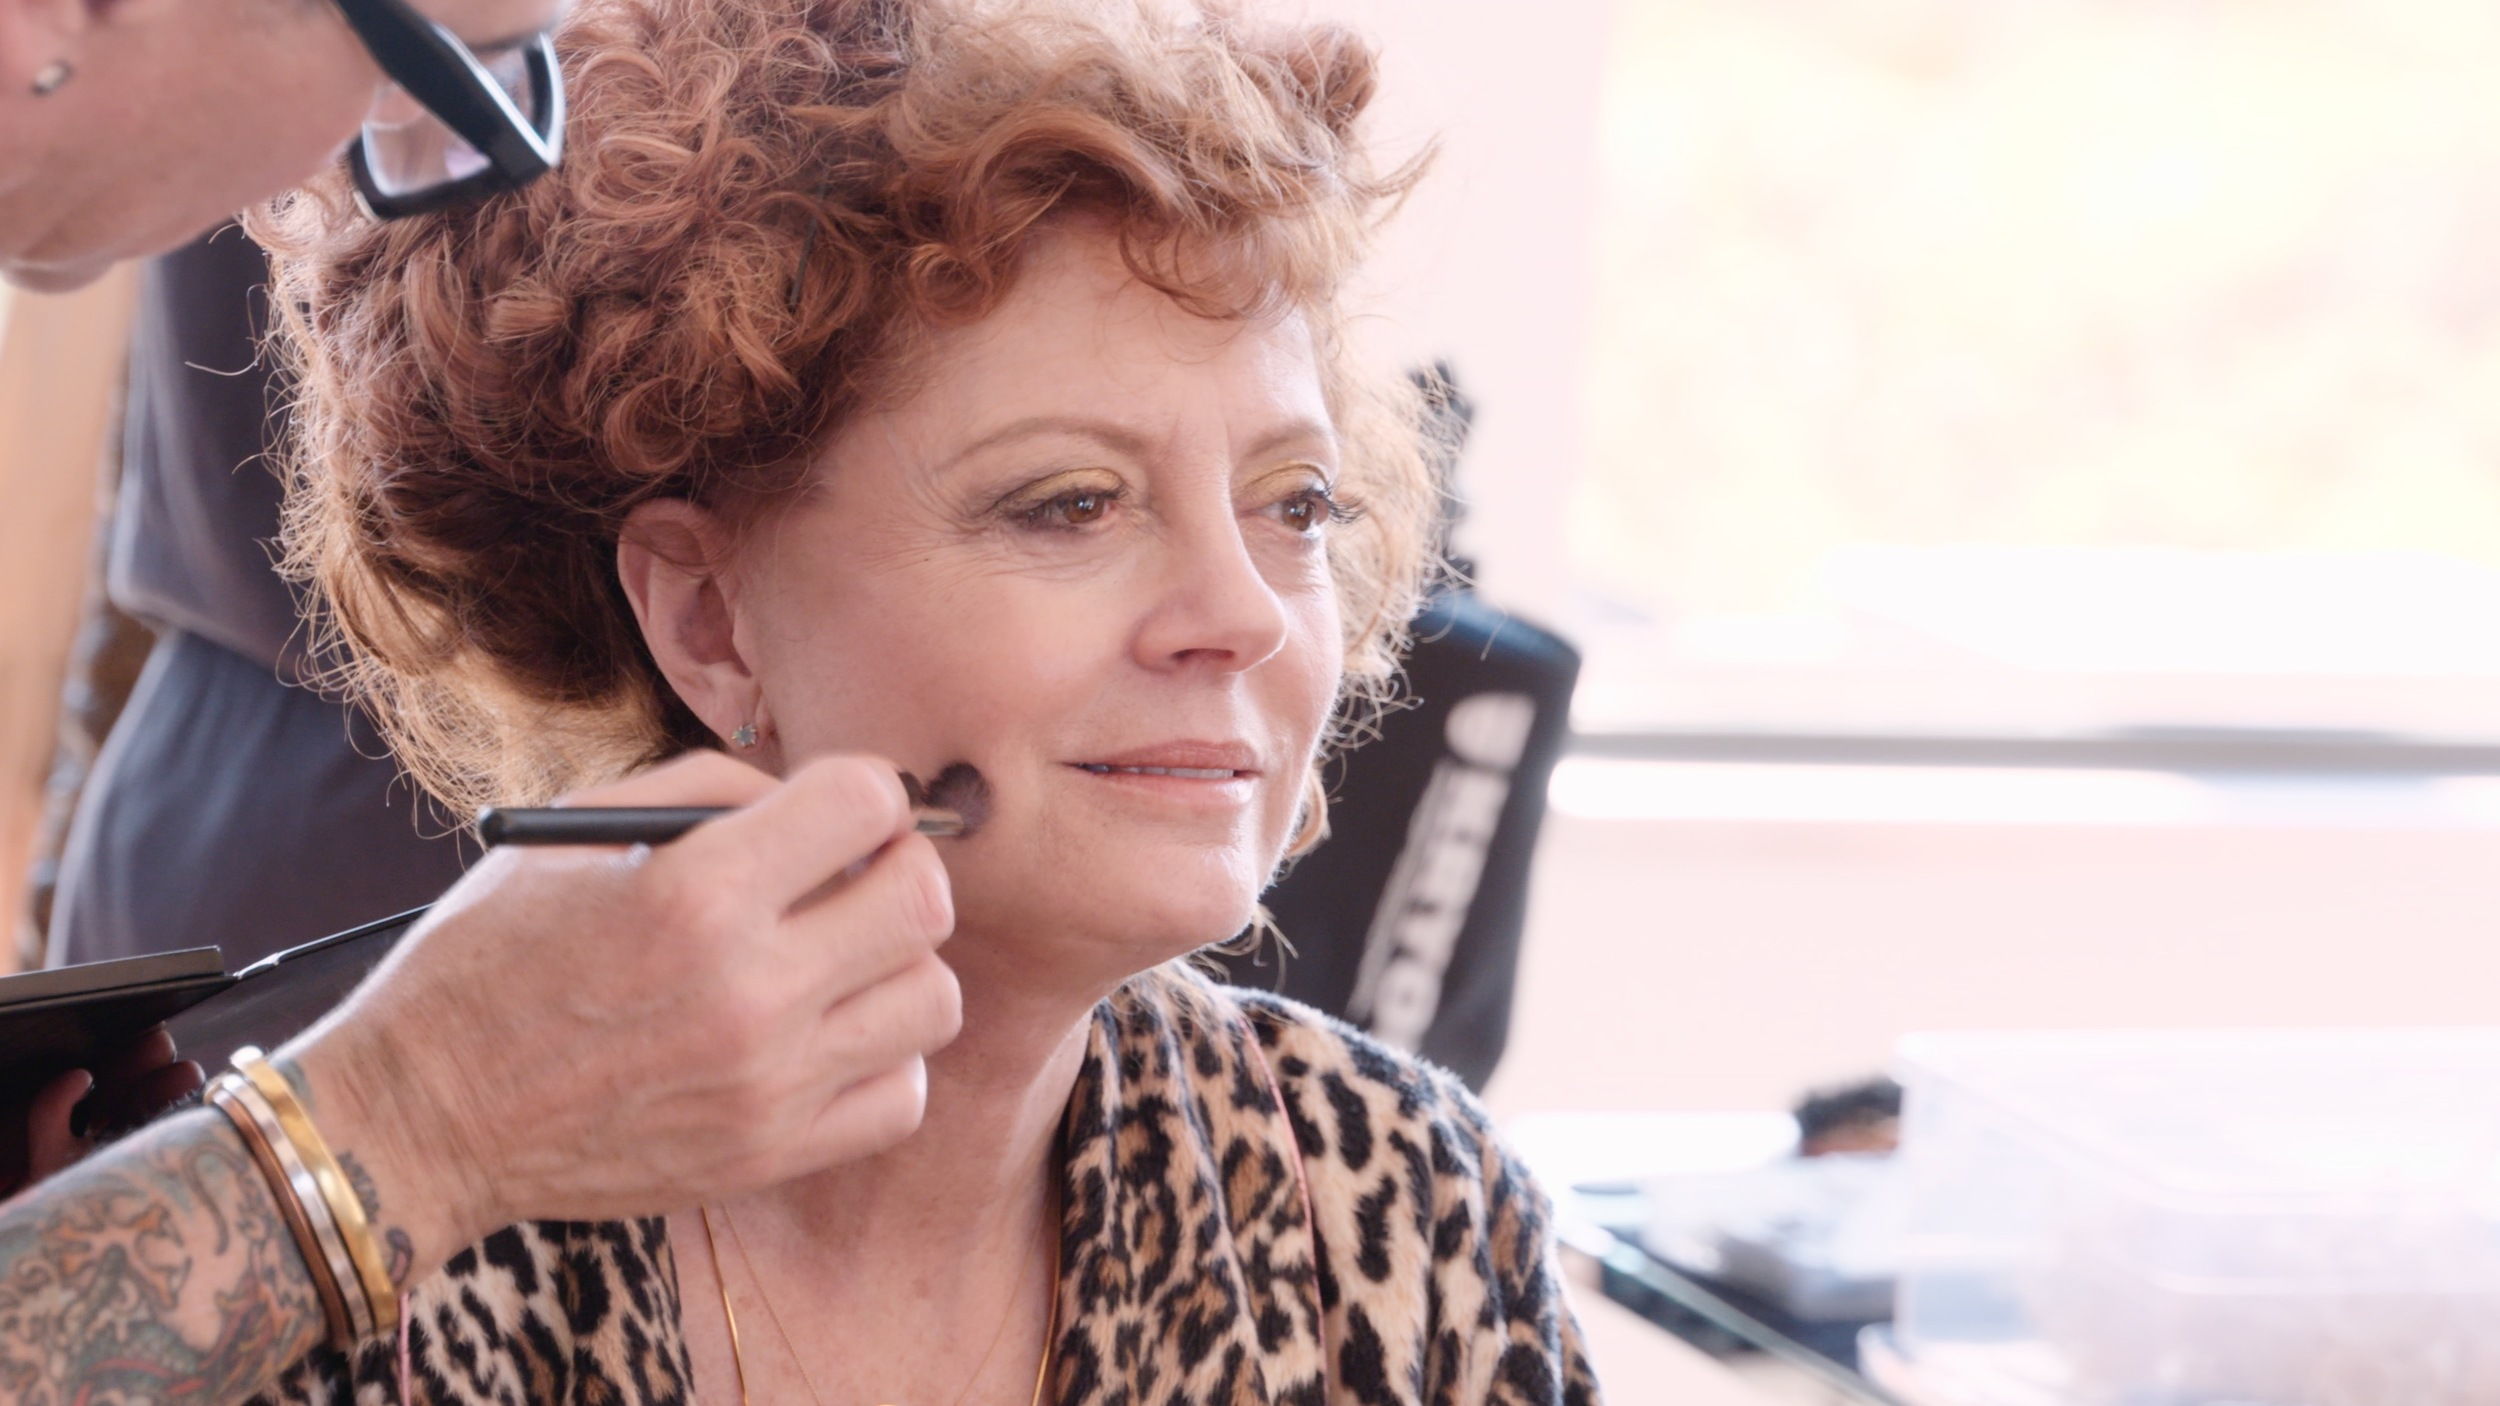 Susan Sarandon getting ready for the photoshoot by Michael Garlington. David Reposar and Lonnie Rivers did her makeup and hair for the shoot.